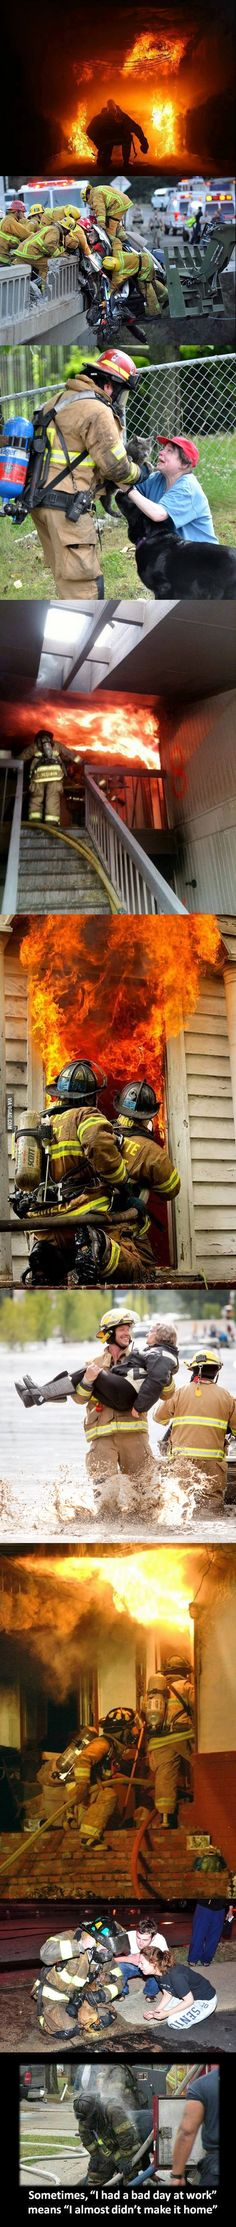 Respect to all the firemen!